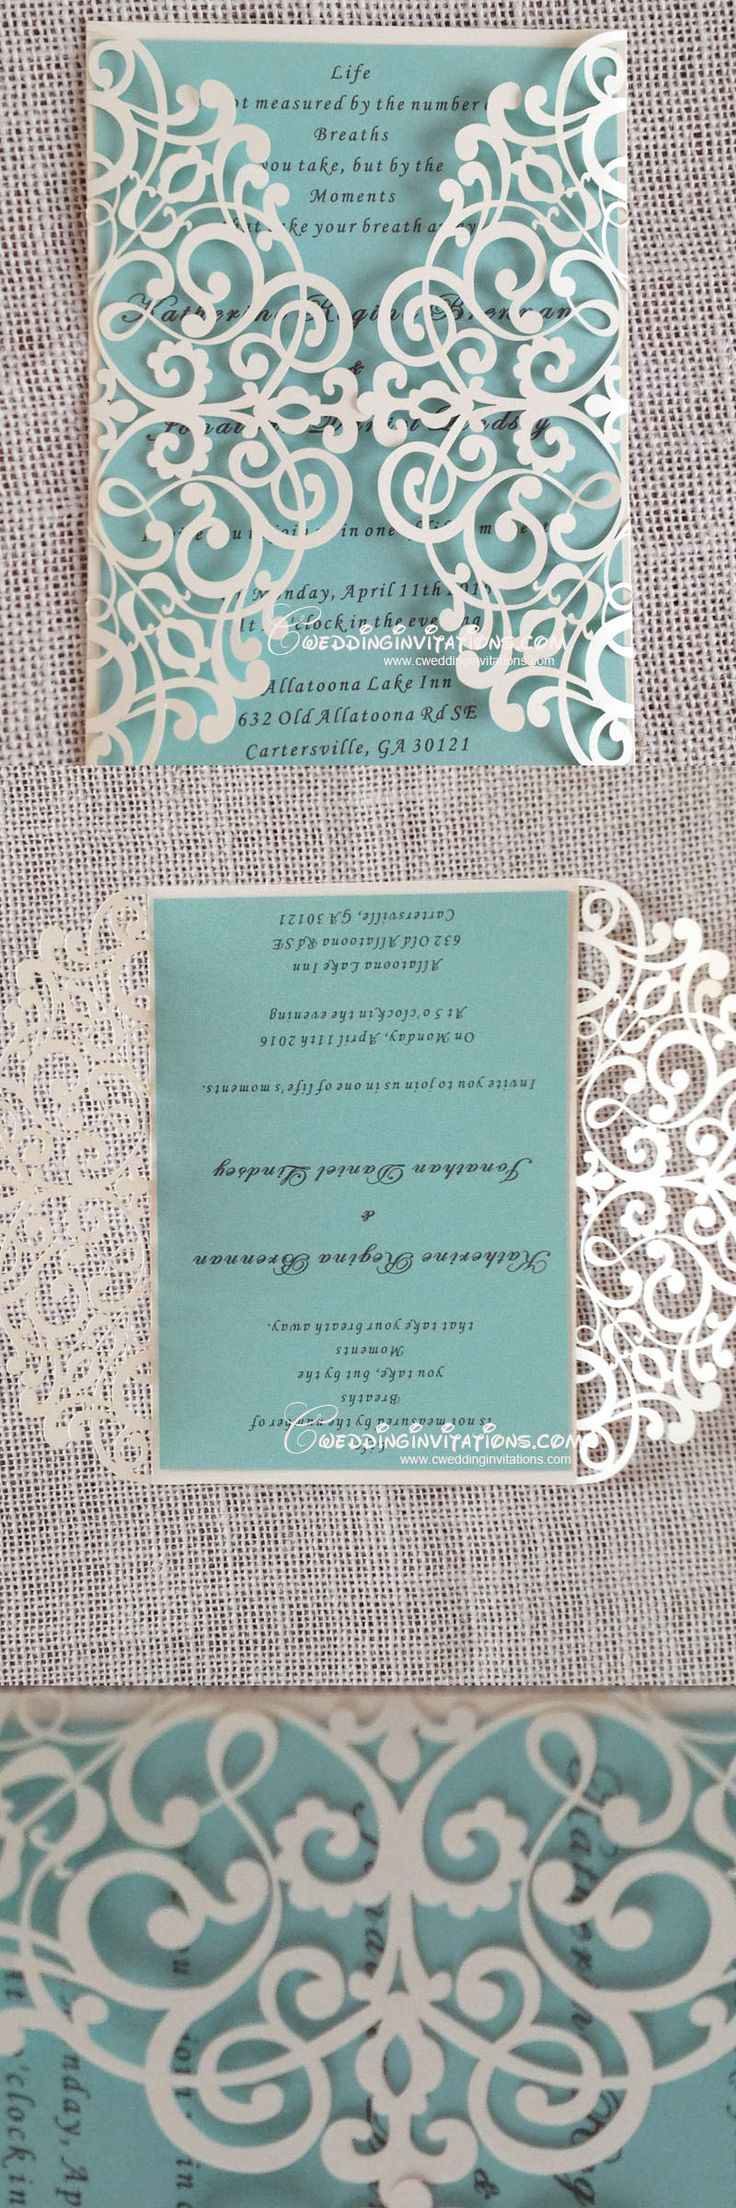 Best 25 laser cut invitation ideas on pinterest laser cut tiffany blue laser cut wedding invitations laser cut wedding invitations wedding invitations wedding cards solutioingenieria Image collections